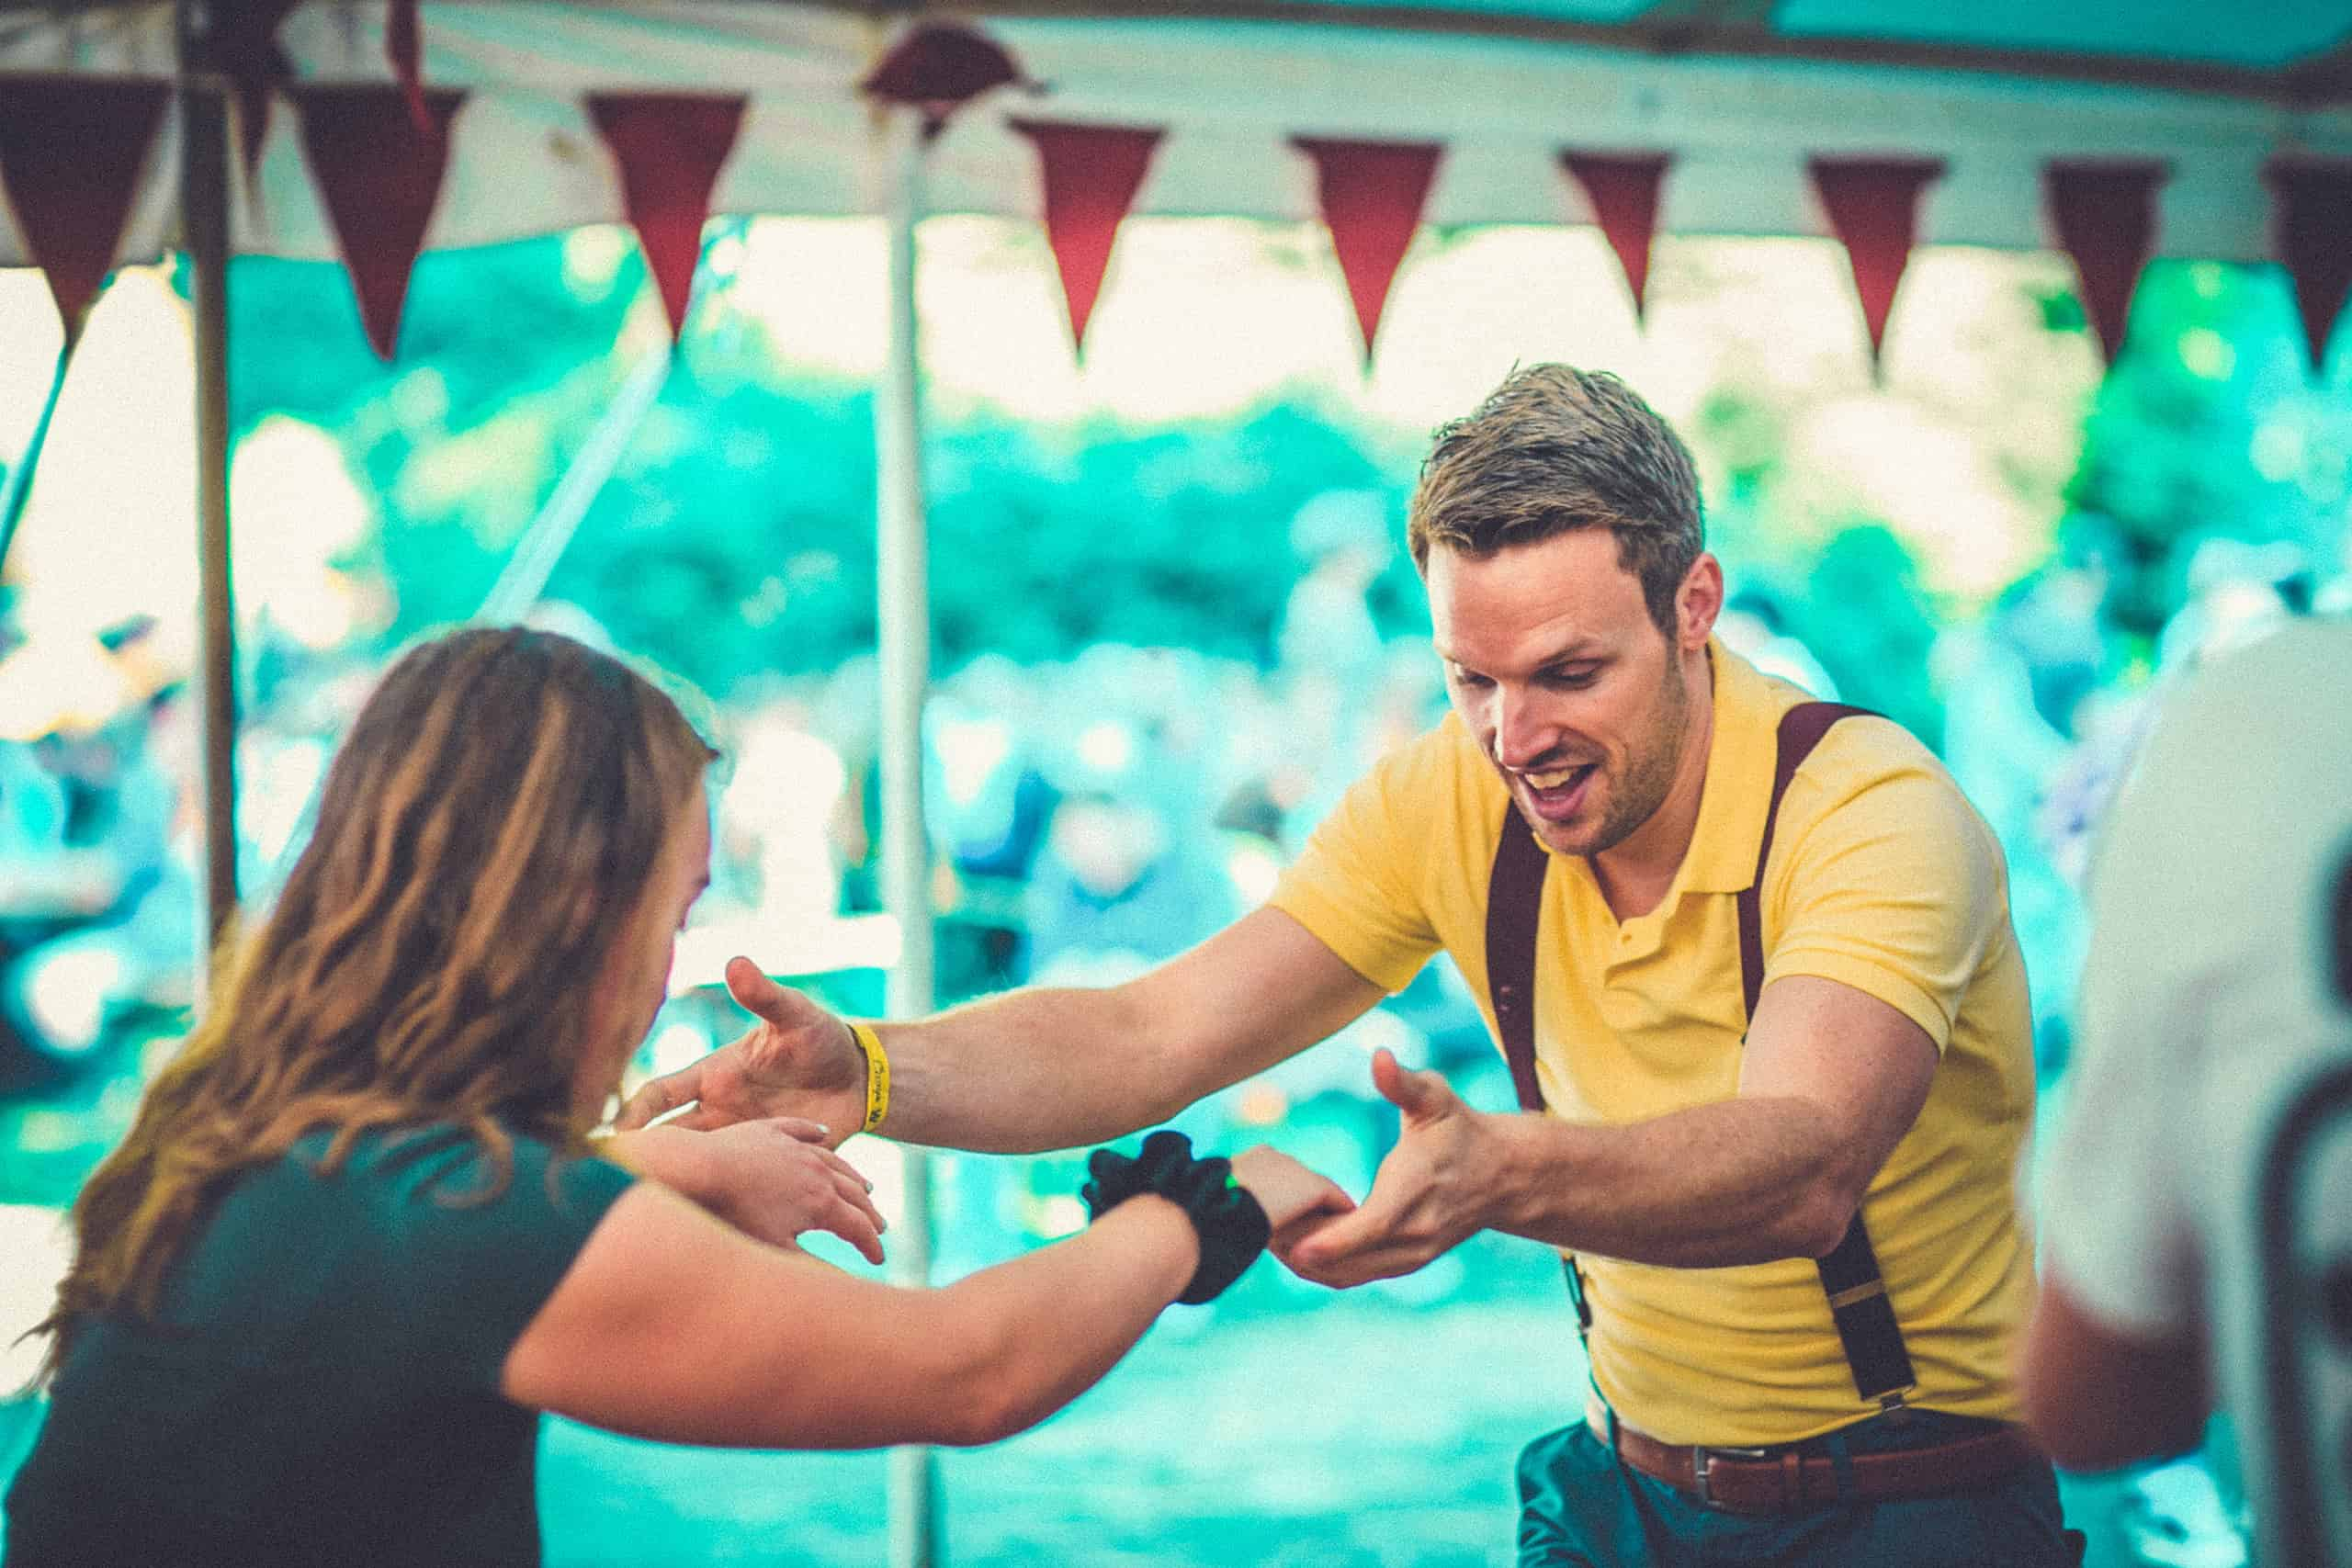 Swing dancing in action at Camp Wildfire. A summer weekend break in a forest near London and Kent. An outdoor woodland retreat featuring adventure activities, live music, DJs, parties and camping. Half summer adventure activity camp, half music festival, for adults only.